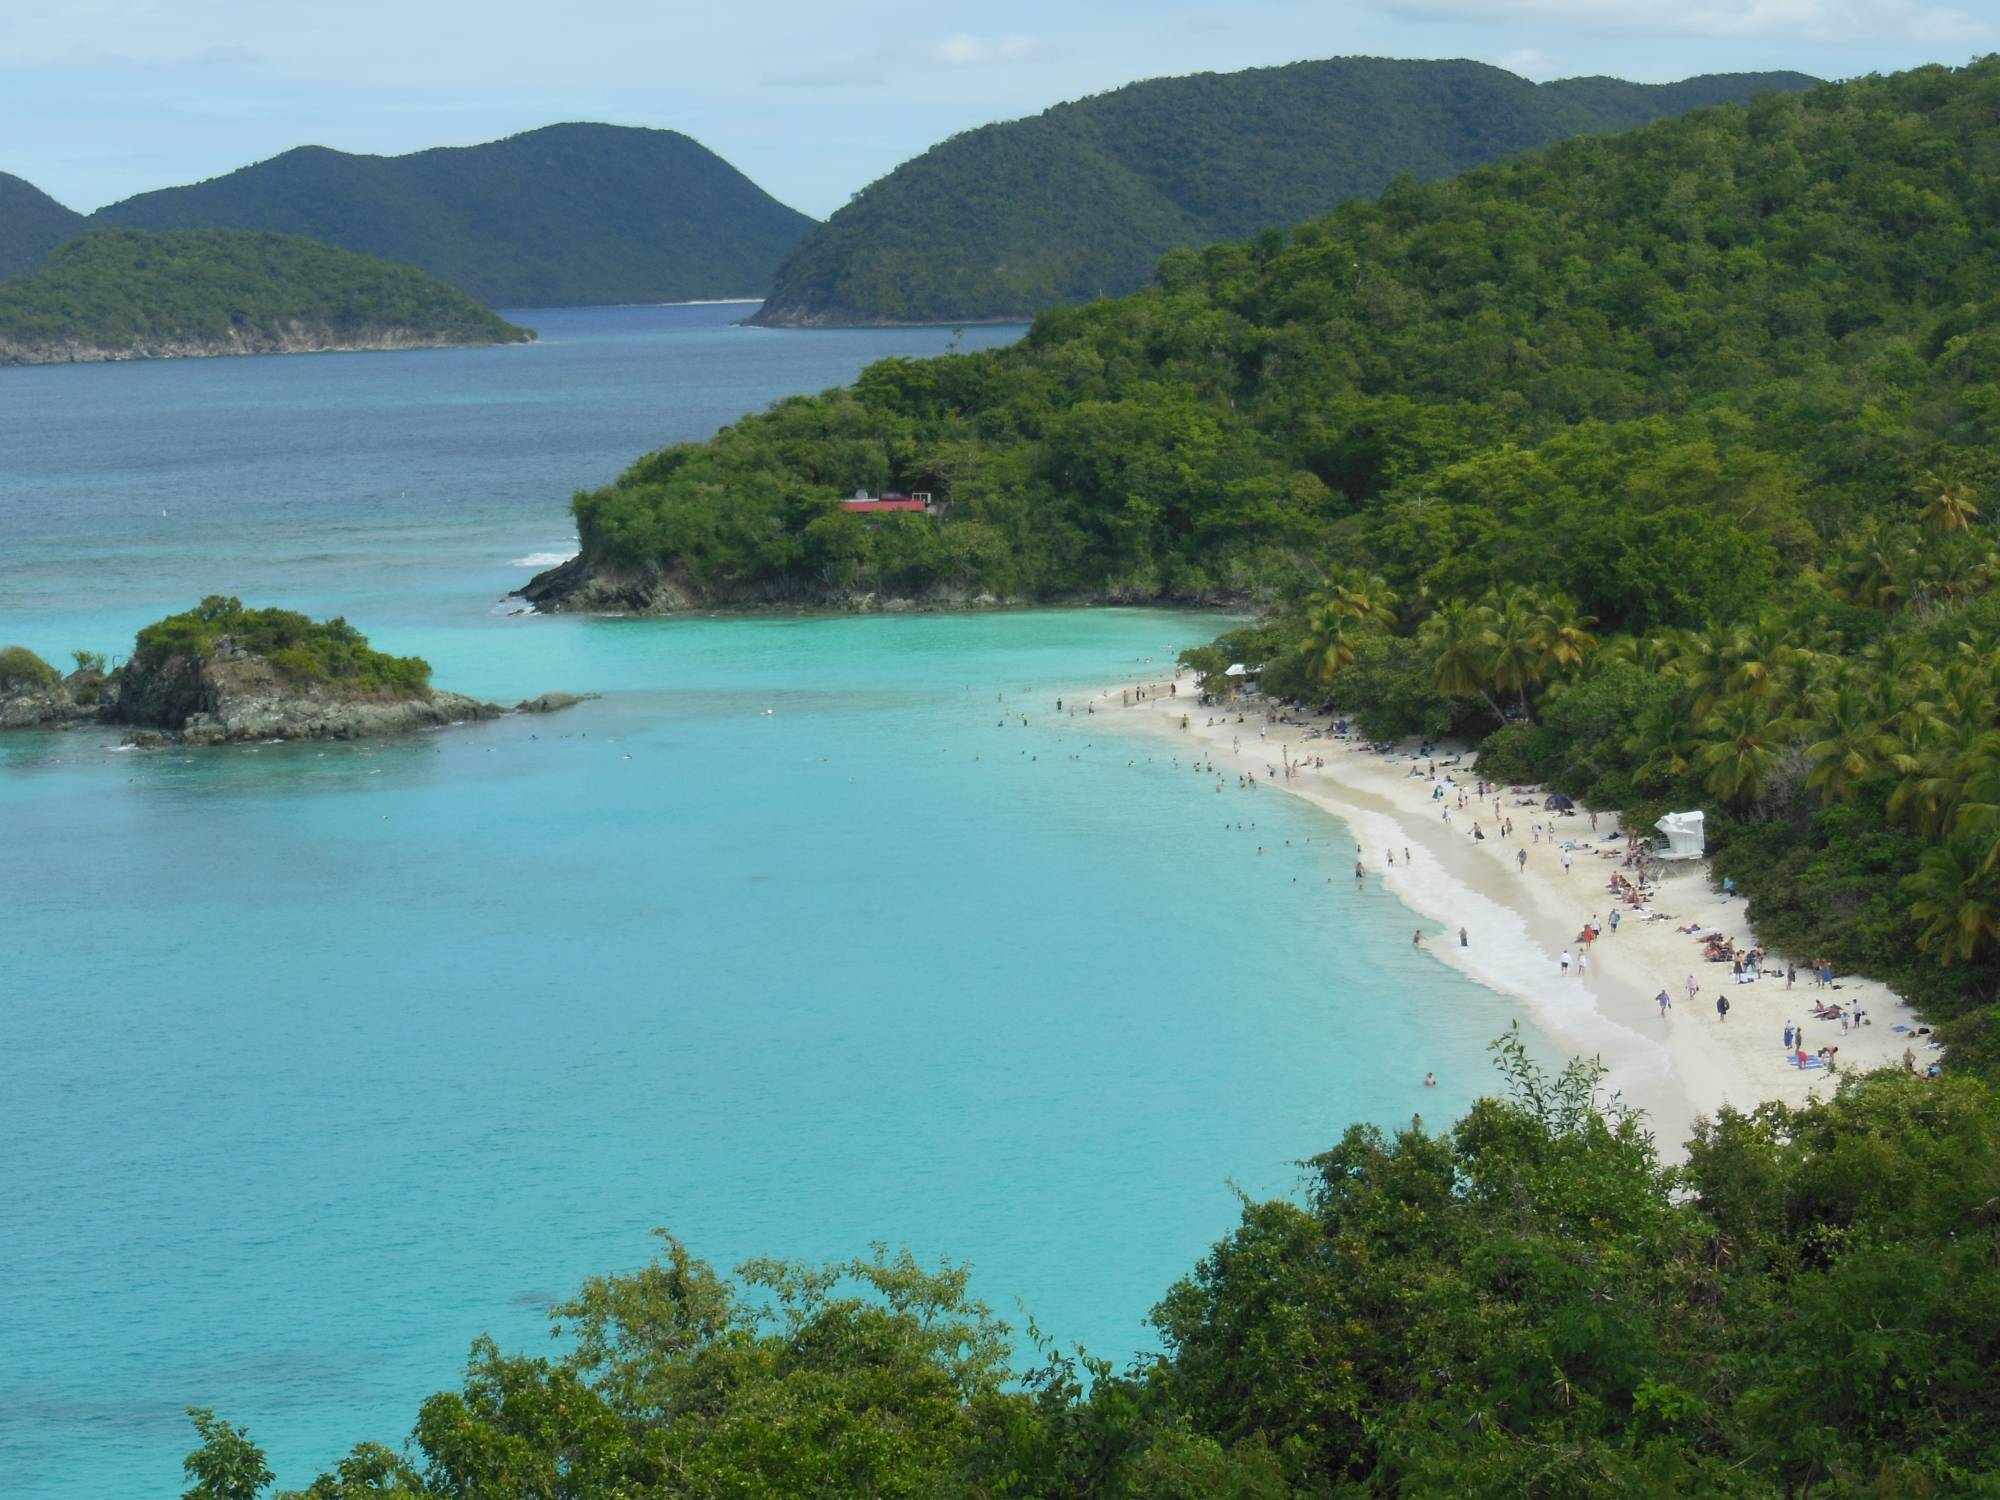 Explore the beauty of St. John in the U.S. Virgin Islands |PassPorter.com